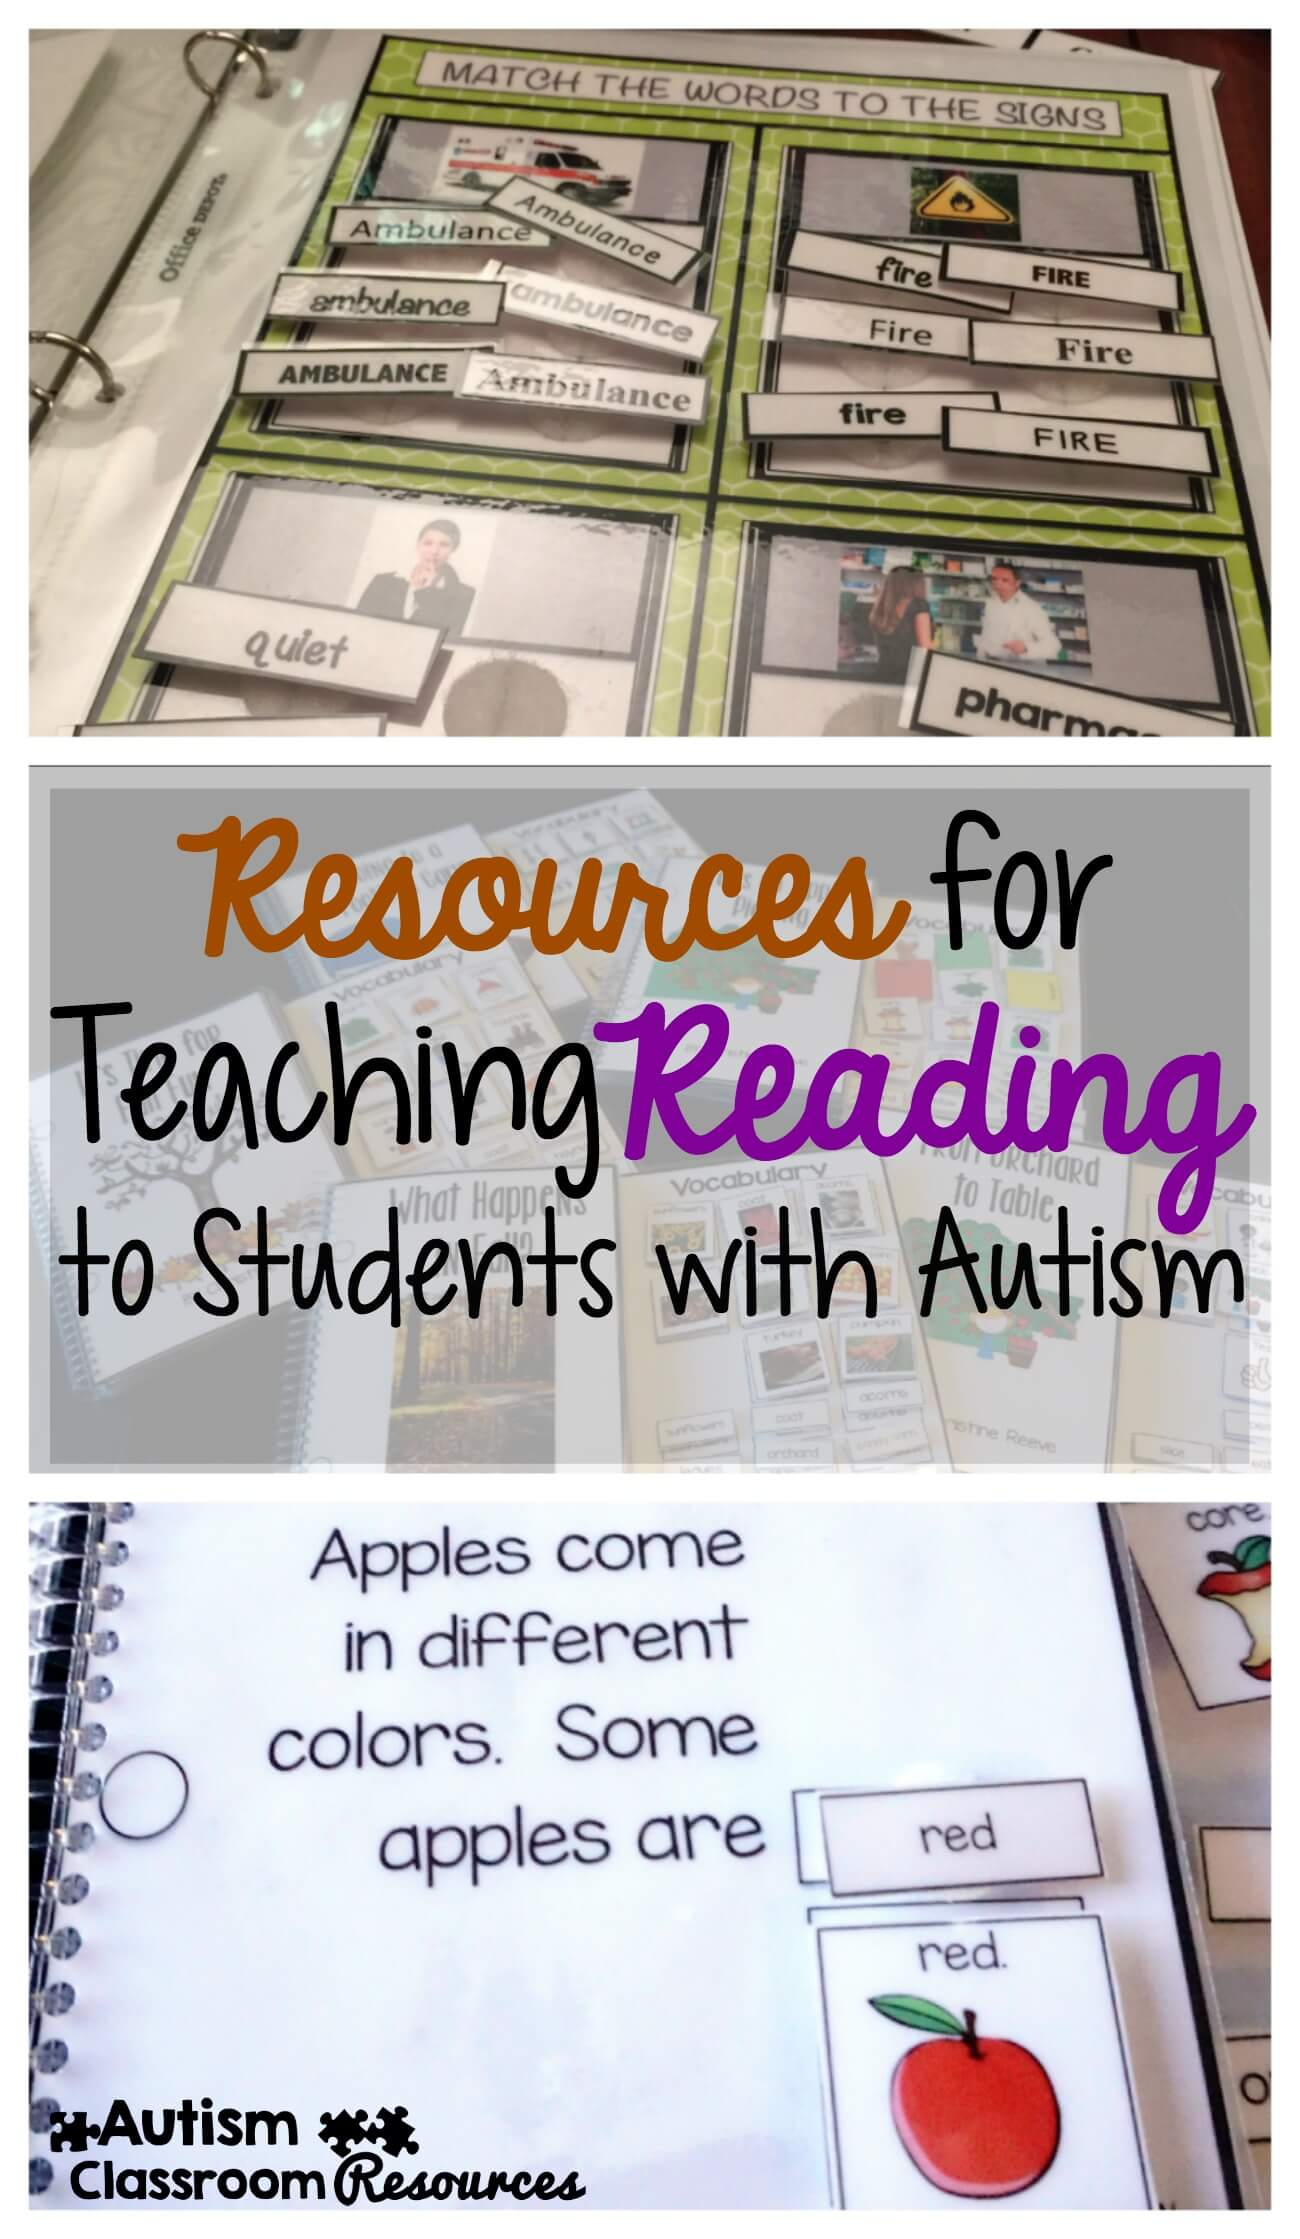 worksheet Functional Reading Comprehension Worksheets resources for teaching reading to students with autism they are some of the best tools ive found but all need significant additional materials addressing teach